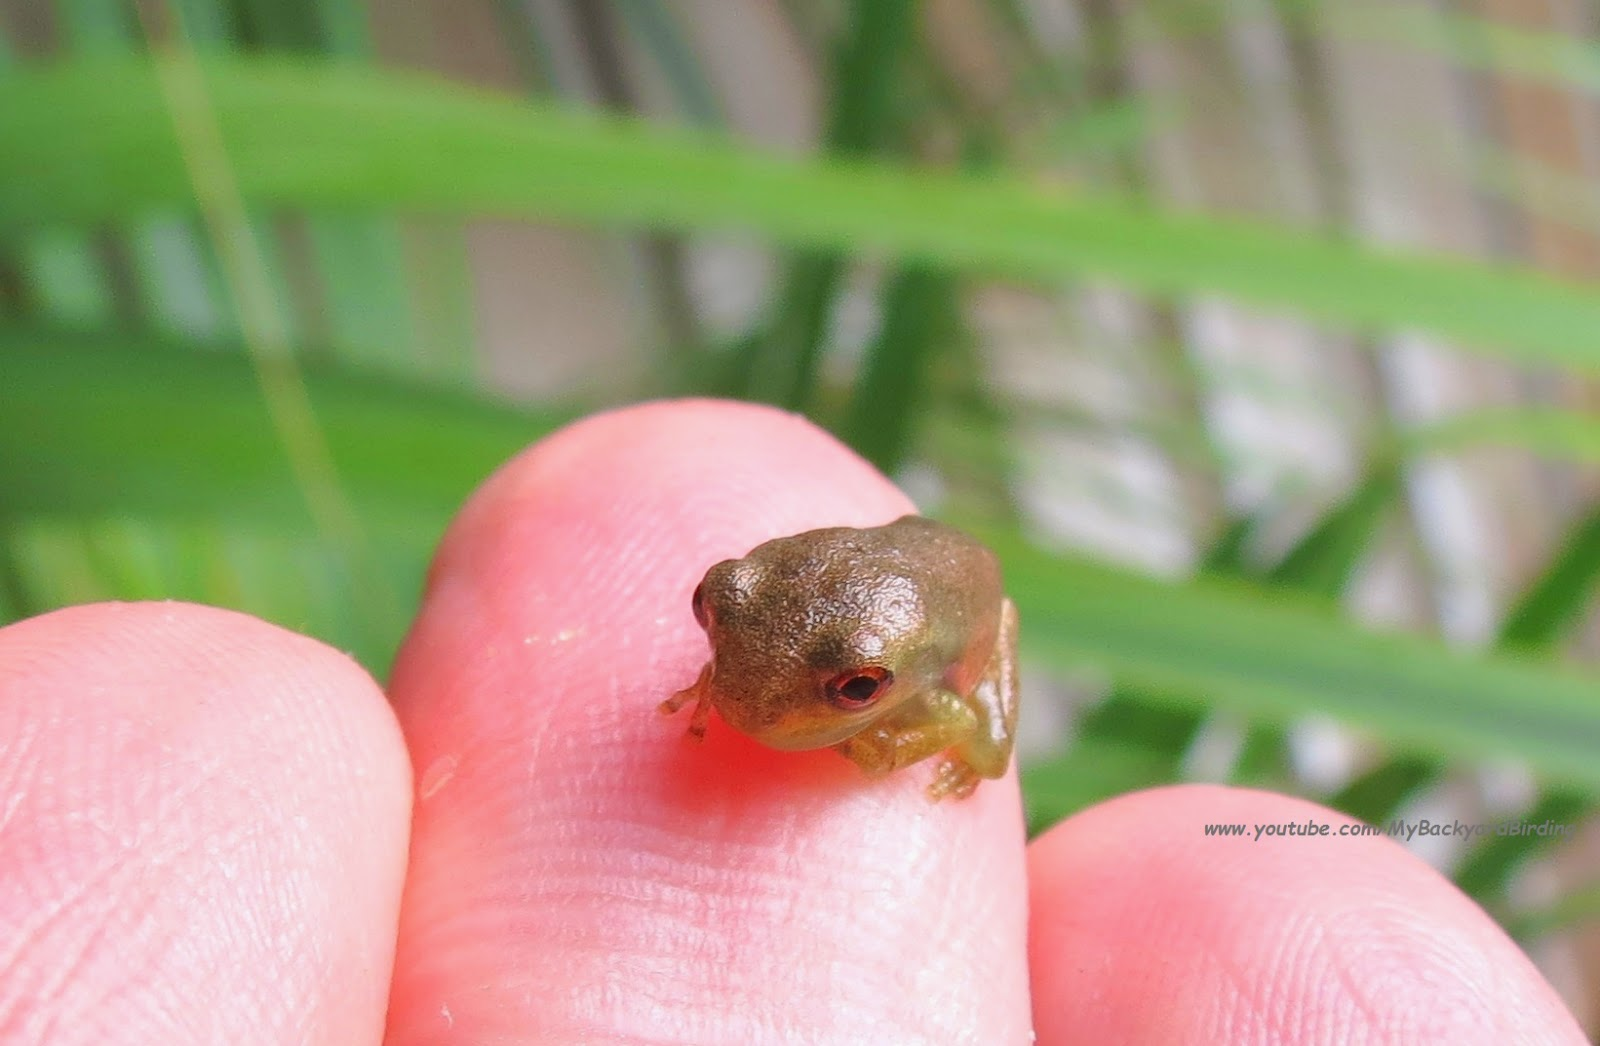 backyard birding and nature cute baby tree frogs poetry of